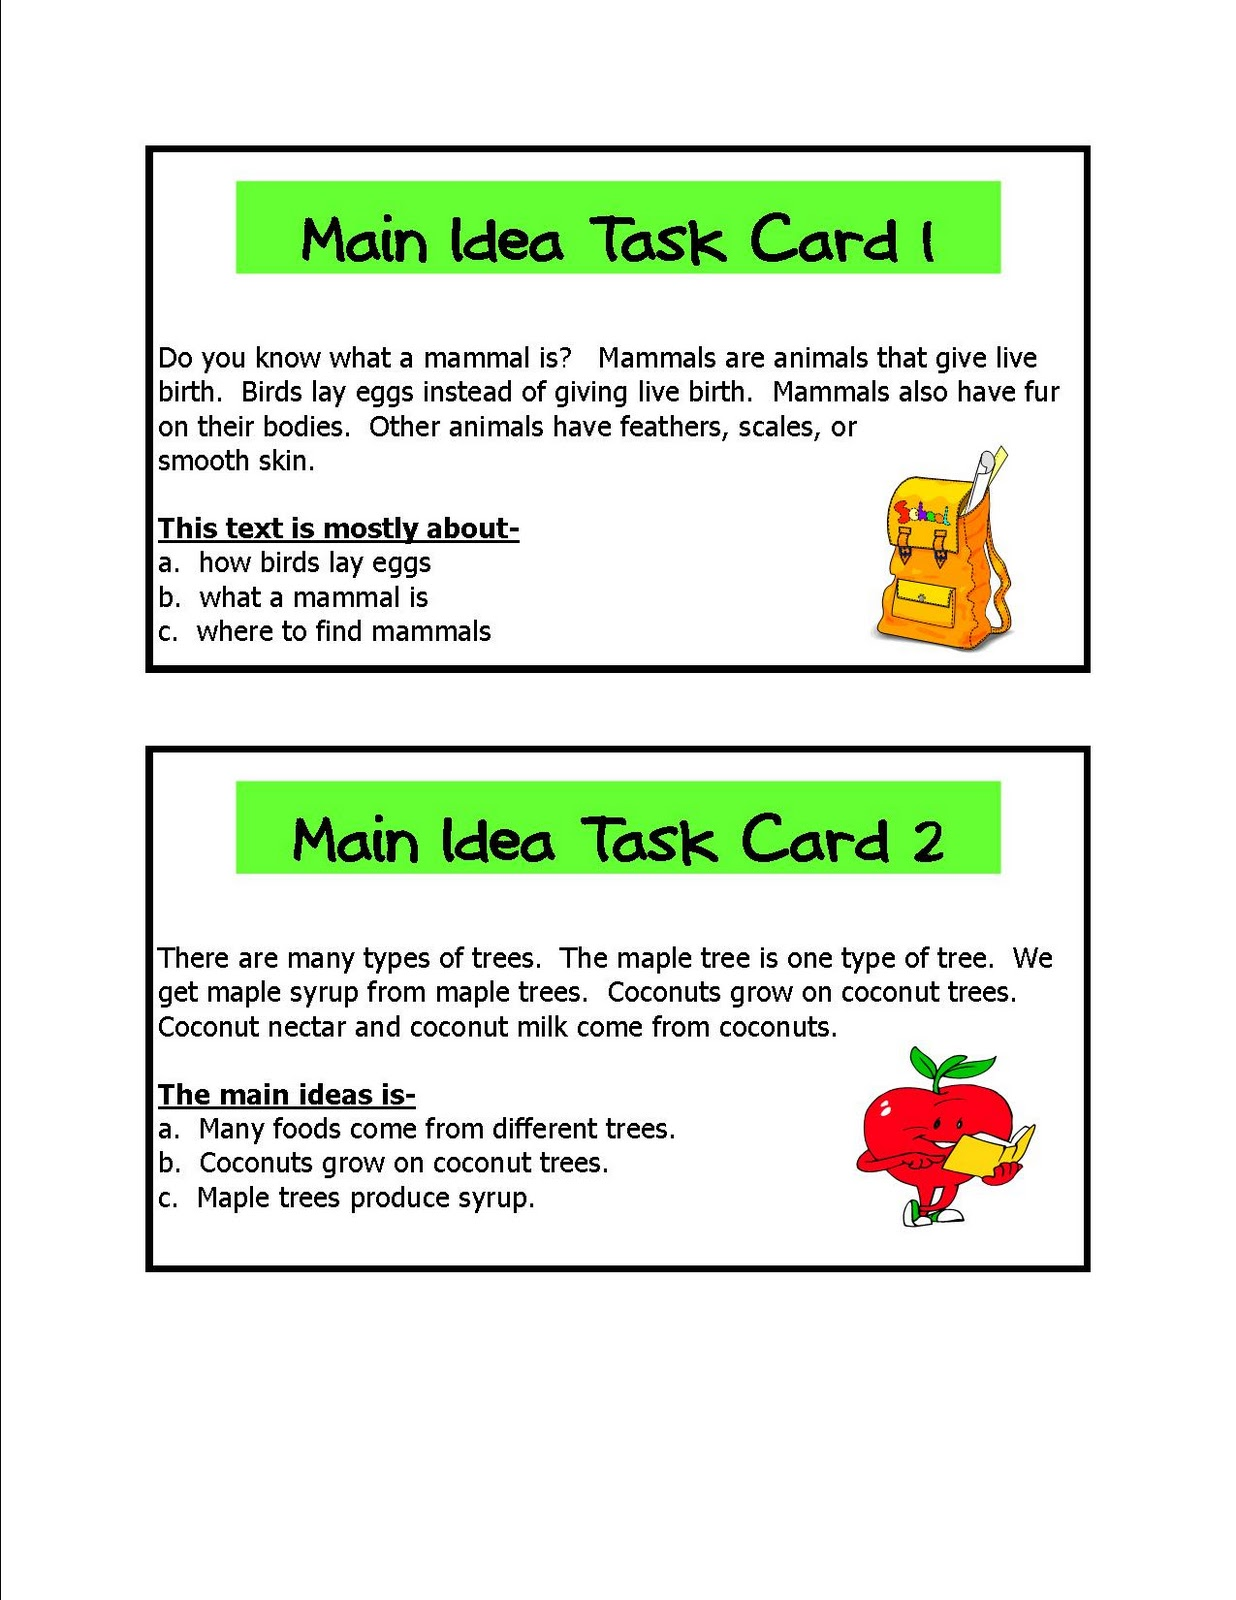 Worksheets Main Idea And Details Worksheets worksheets 4th grade main idea cricmag free worksheet 4 thedanks for everyone identify worksheets